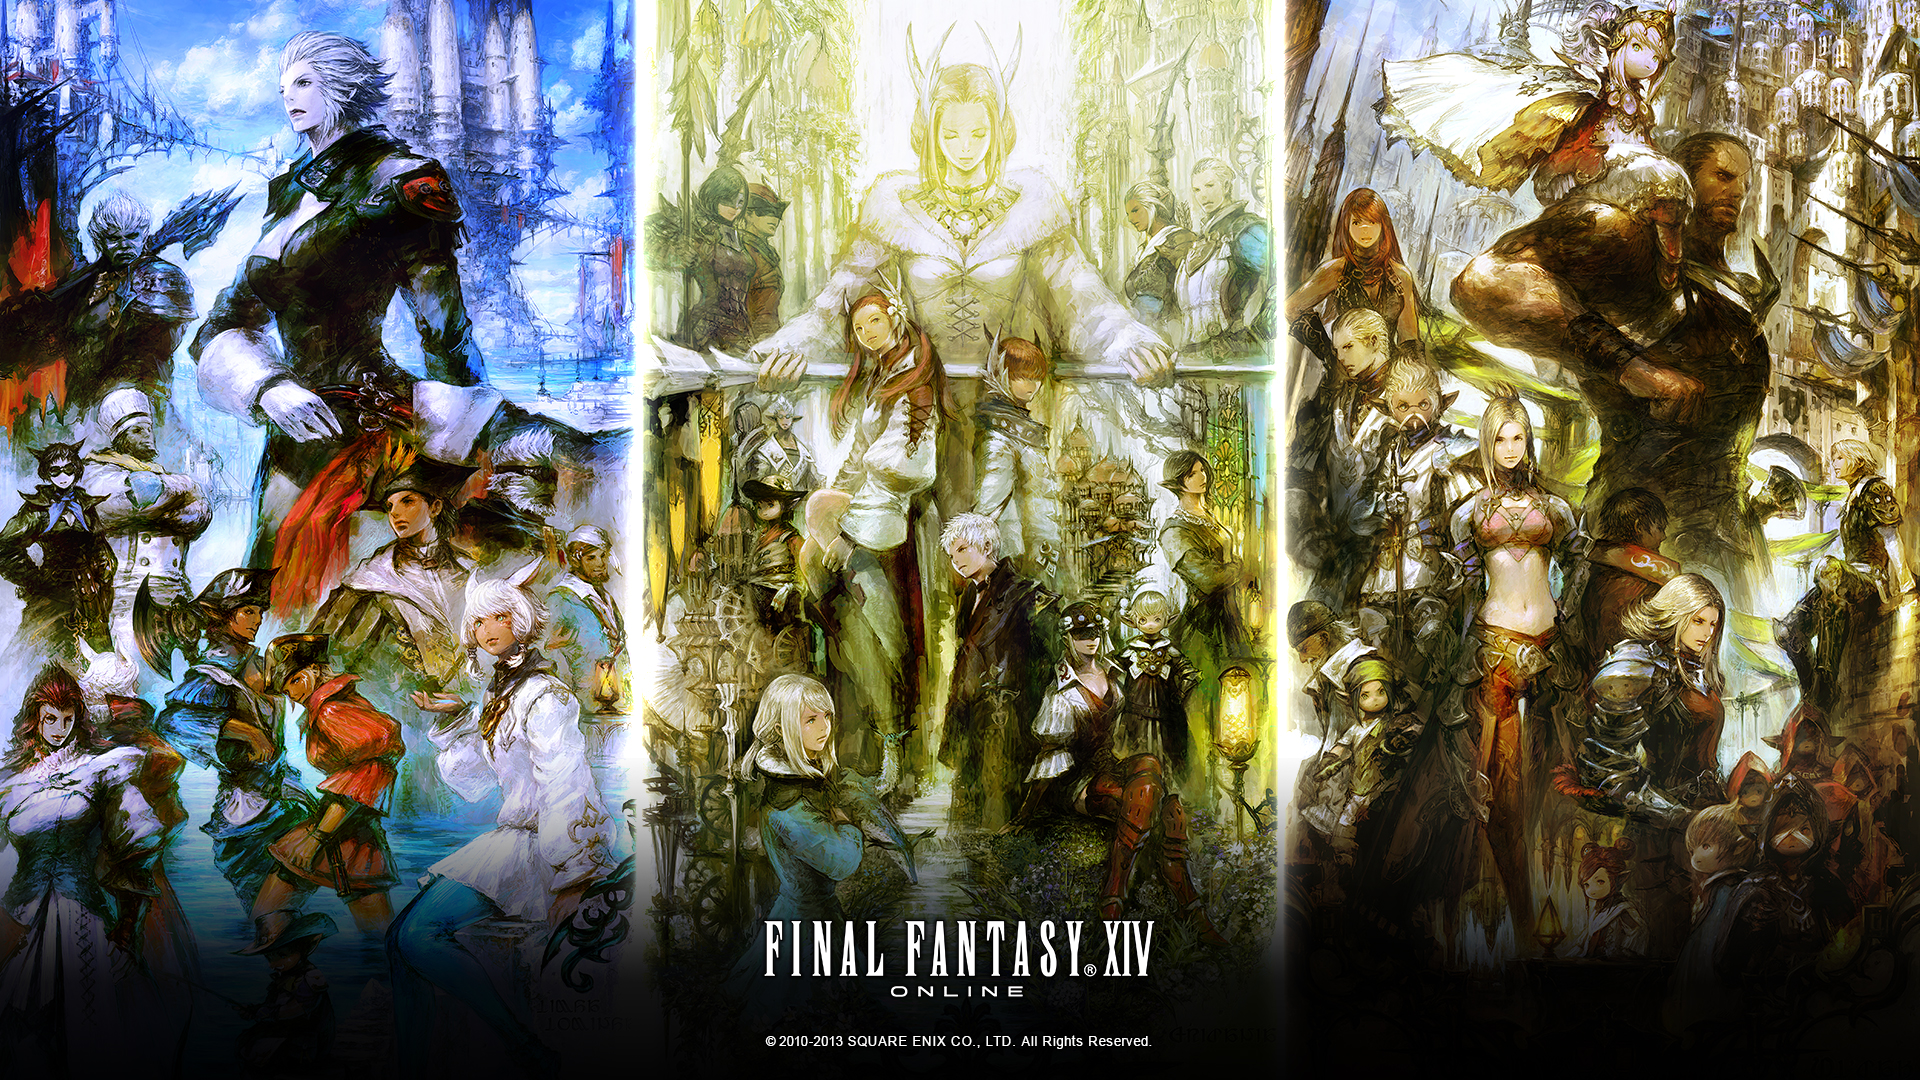 Free Download Final Fantasy Xiv Wallpapers Mmodaq 1920x1080 For